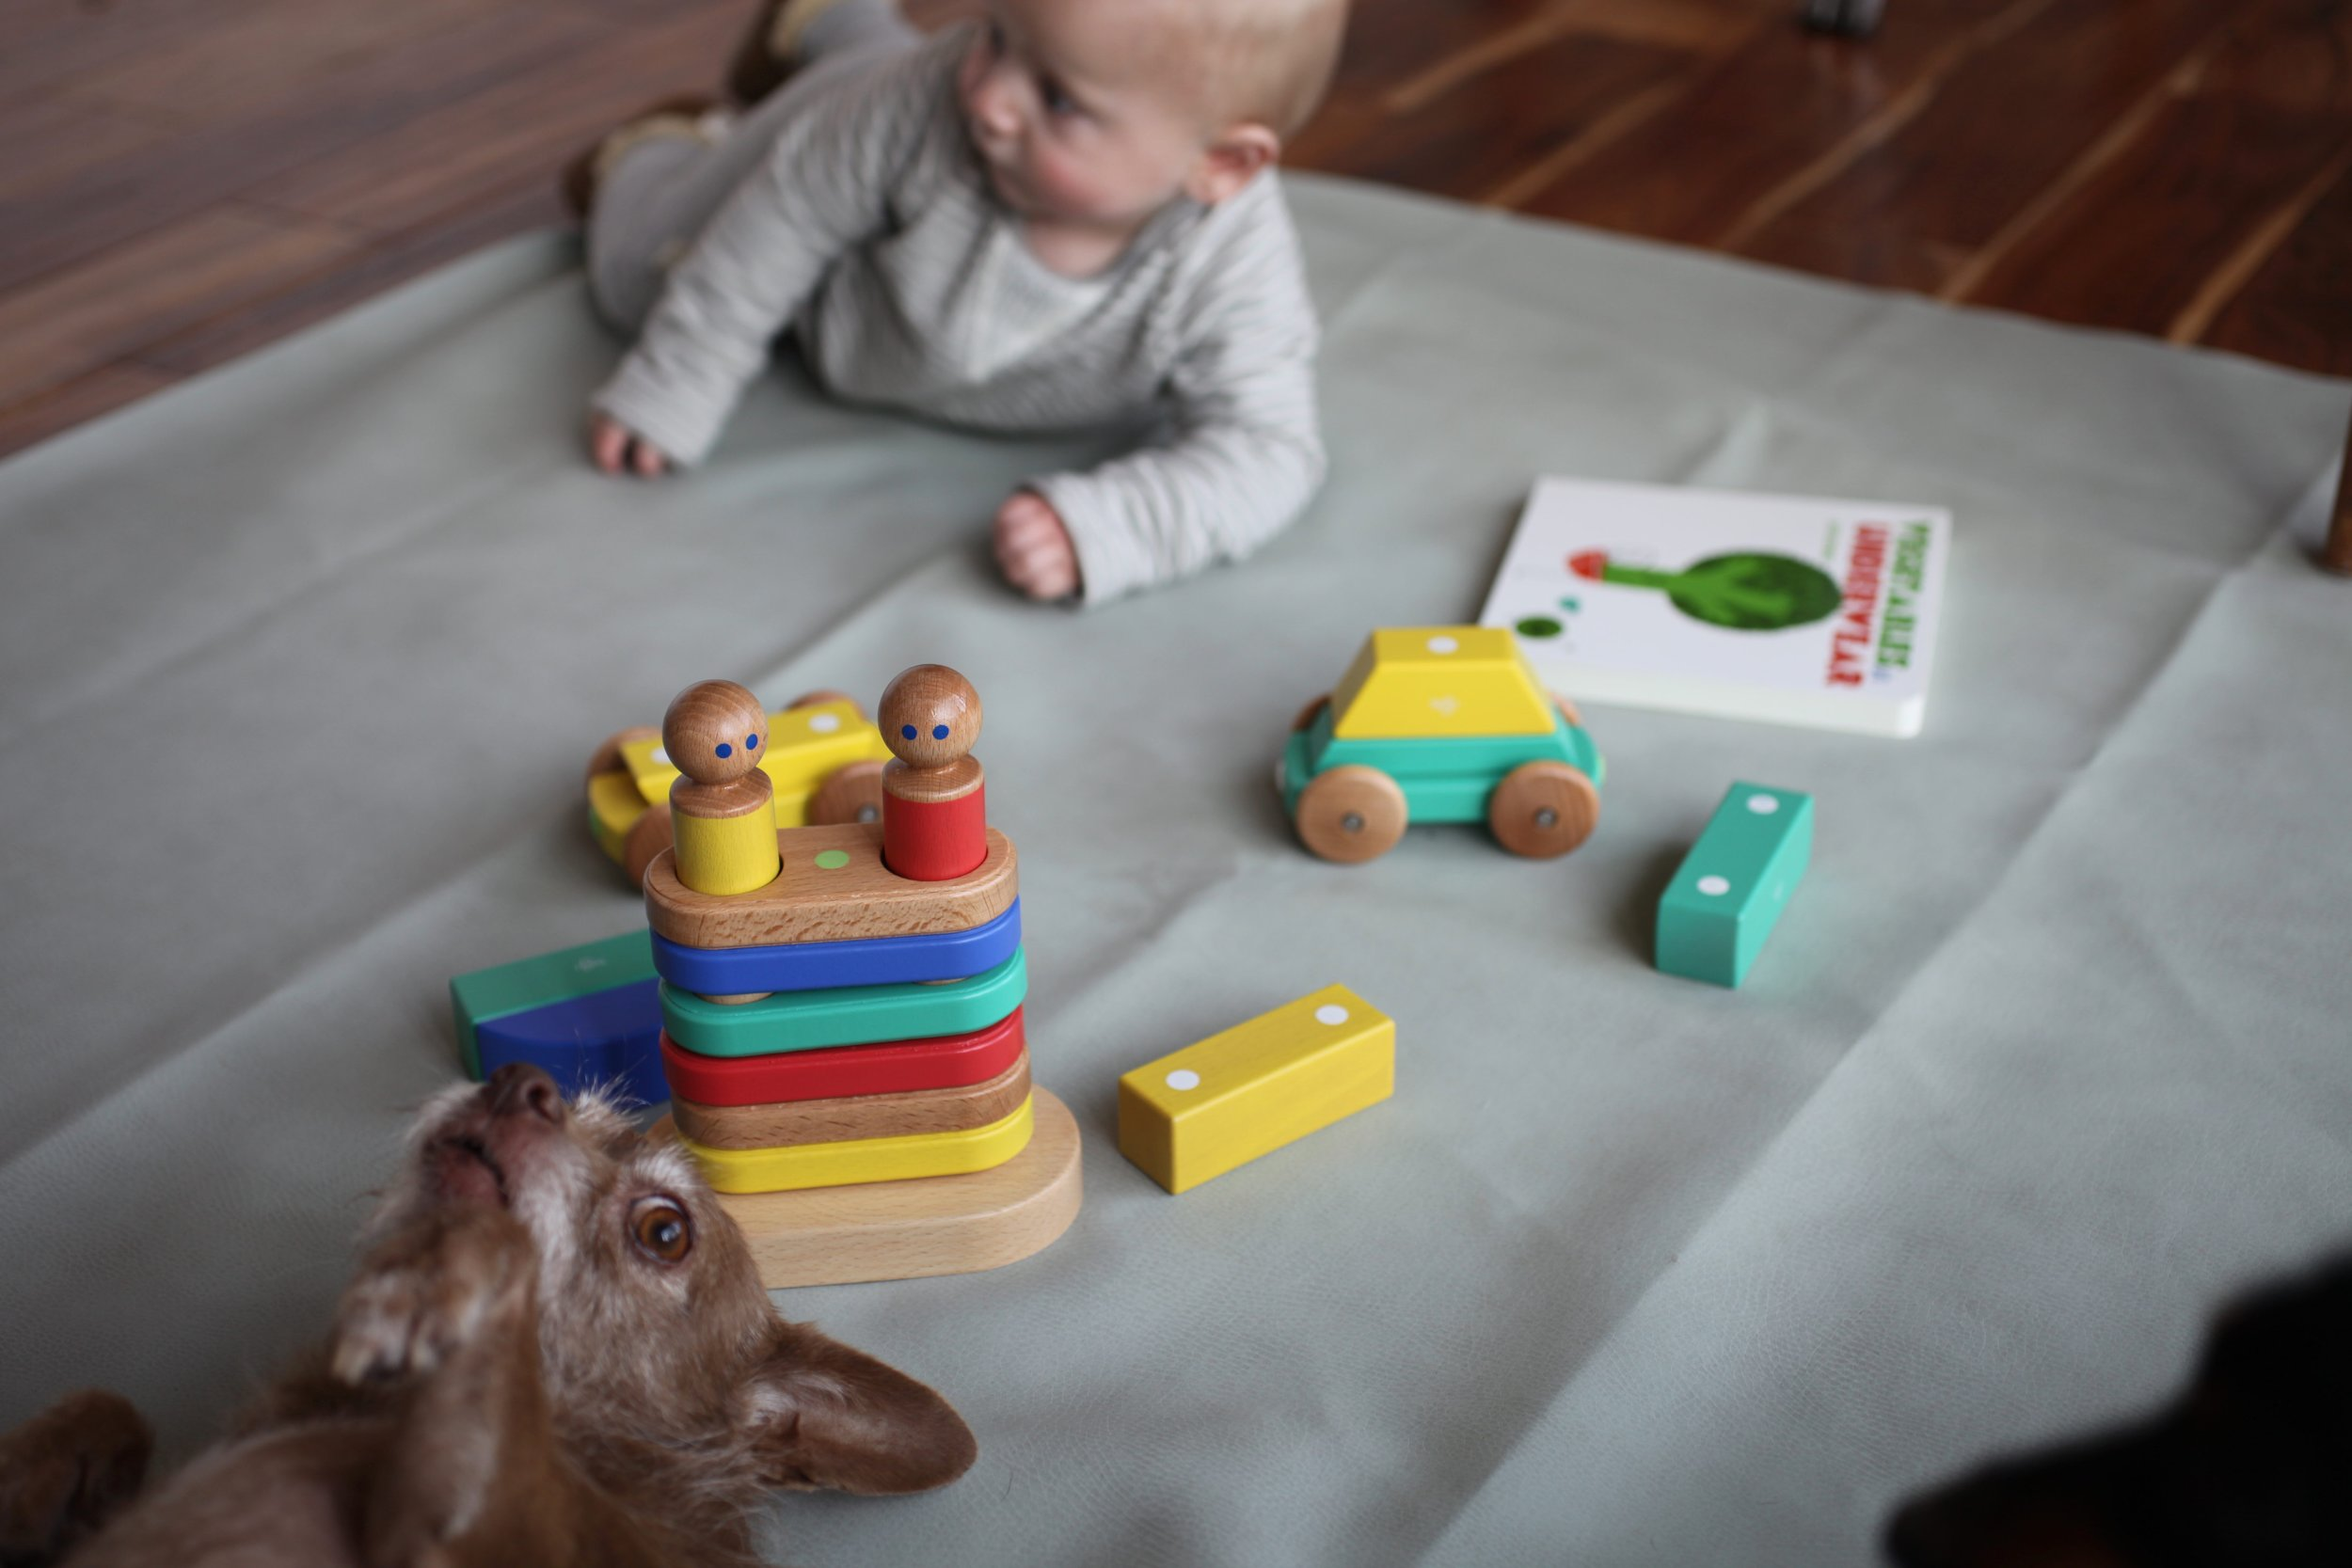 The Tegu Magnetic floating stacker is a great option for babies aged 6 months to pre-school IMO